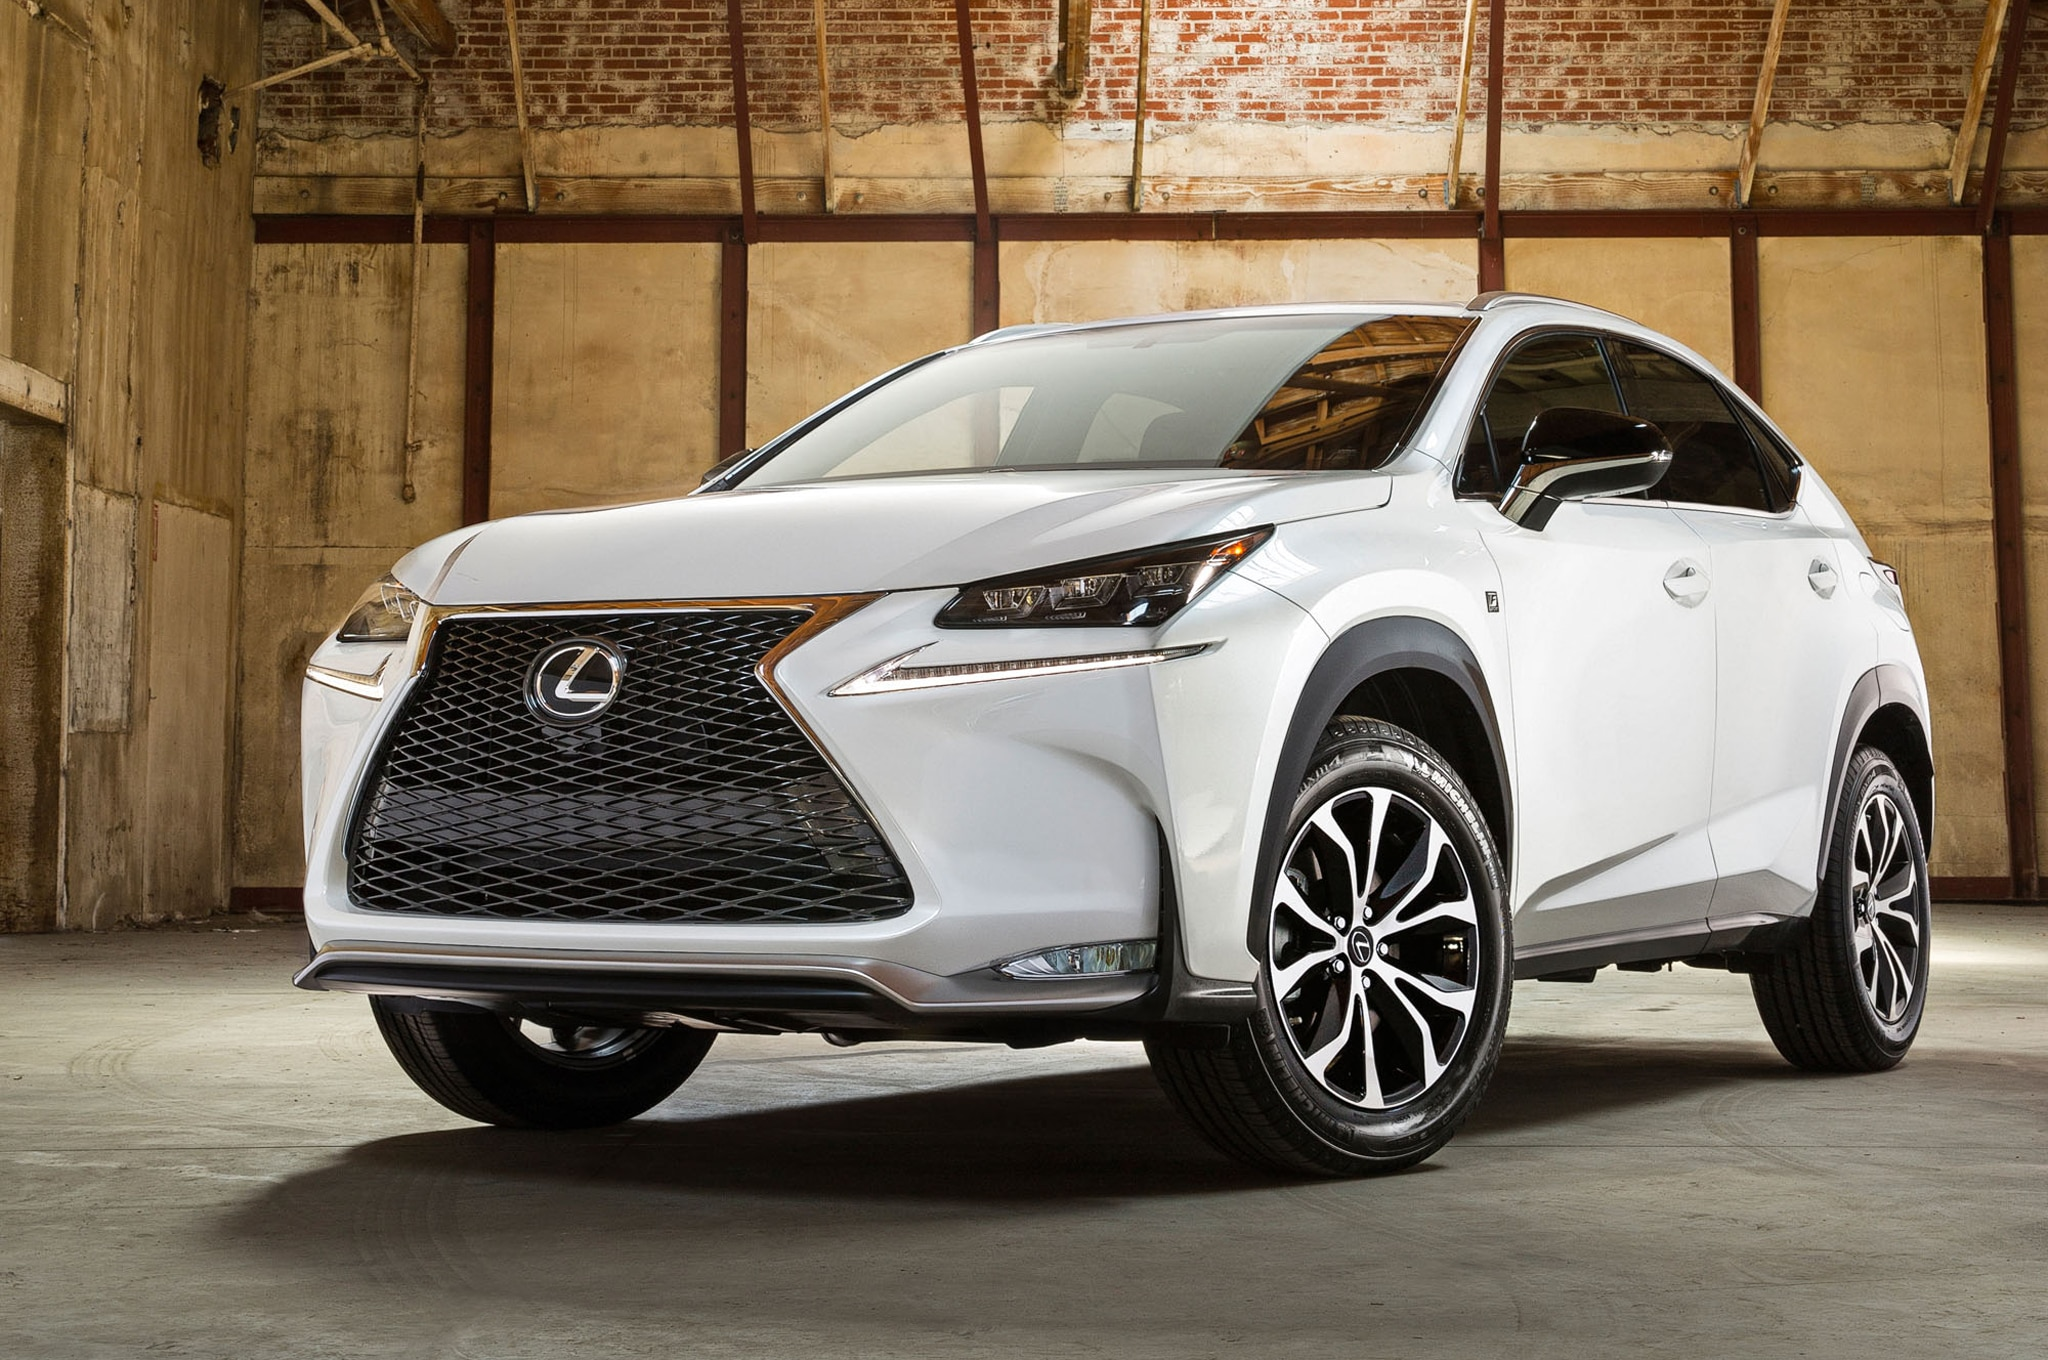 2015 lexus nx 200t and nx 300h details revealed automobile magazine. Black Bedroom Furniture Sets. Home Design Ideas